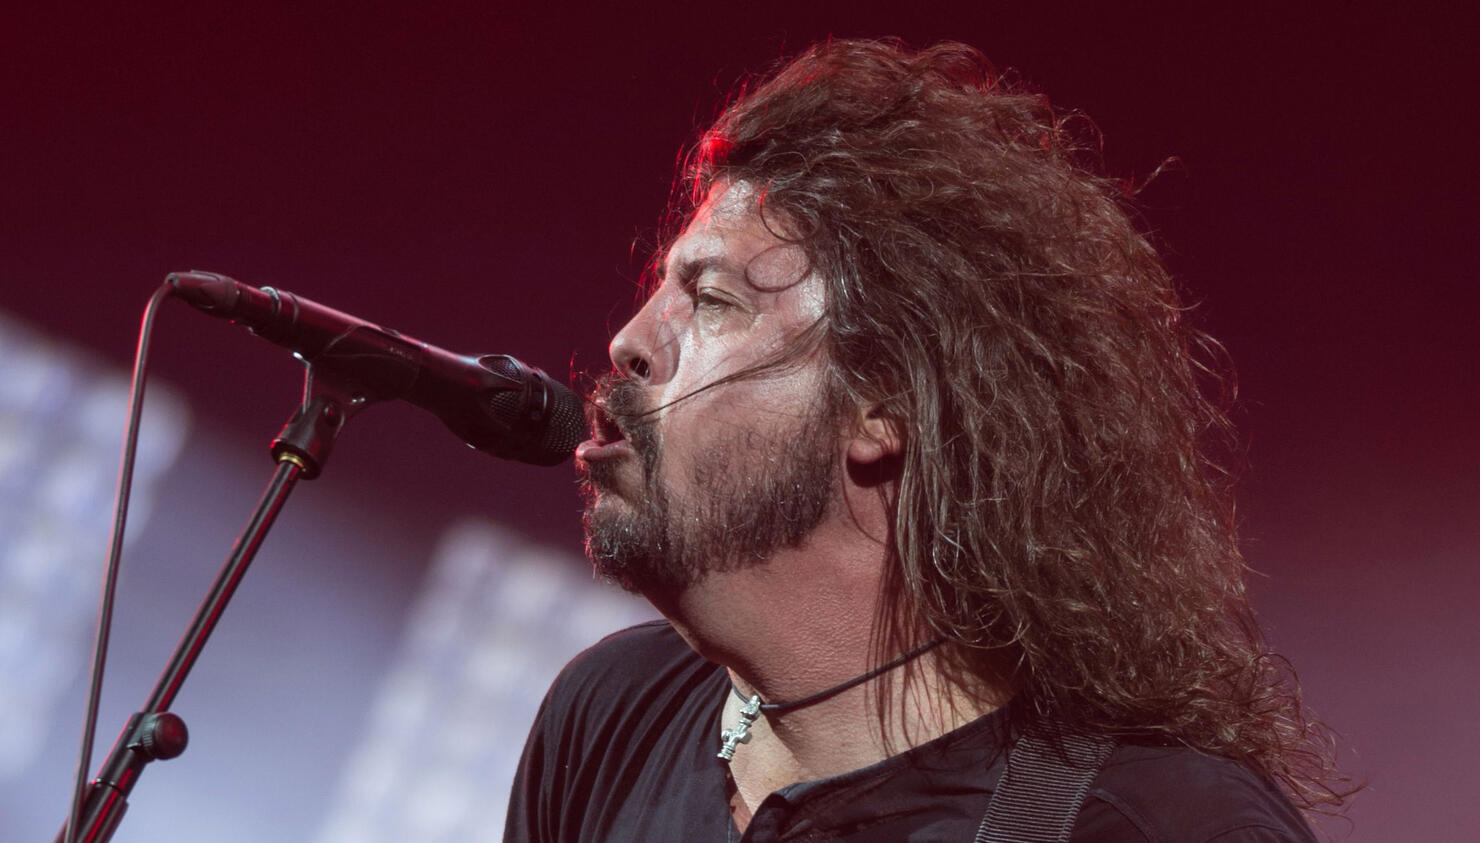 Watch the Foo Fighters Perform Surprise Pop-Up Show in a Parking Lot